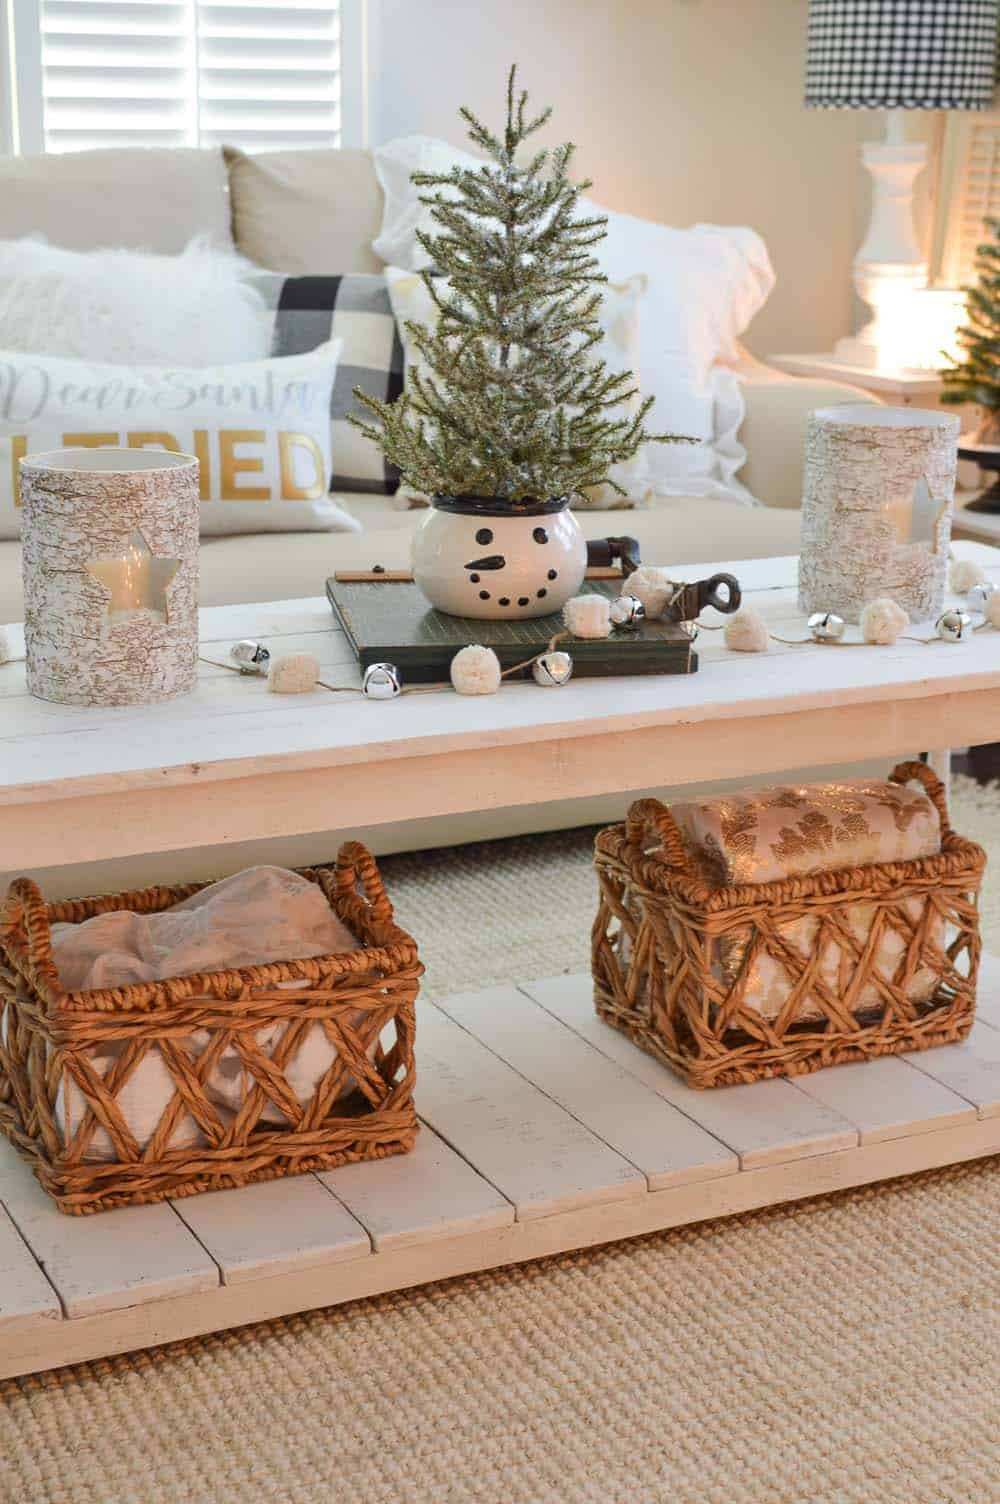 Inspiring Christmas Decorating Ideas-10-1 Kindesign